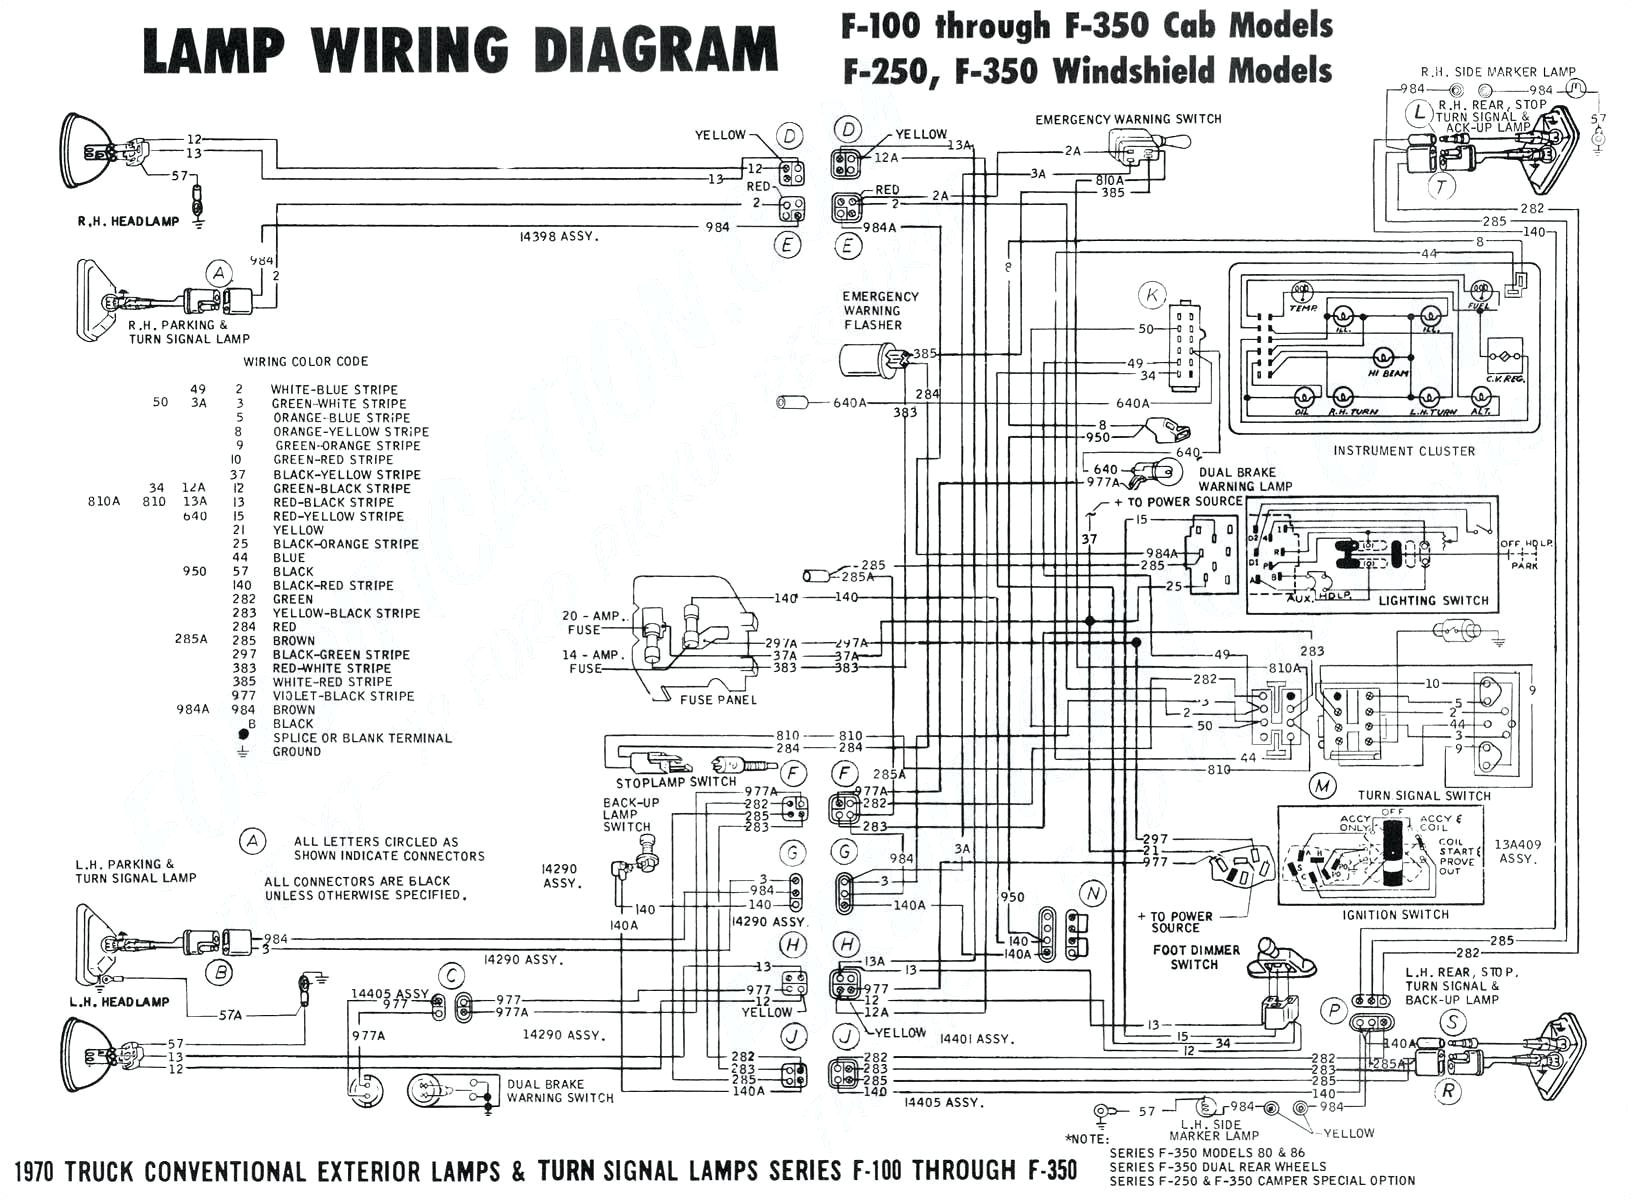 Leviton Switch Outlet Combination Wiring Diagram 20a 125v Cooper Wiring Diagram Blog Wiring Diagram